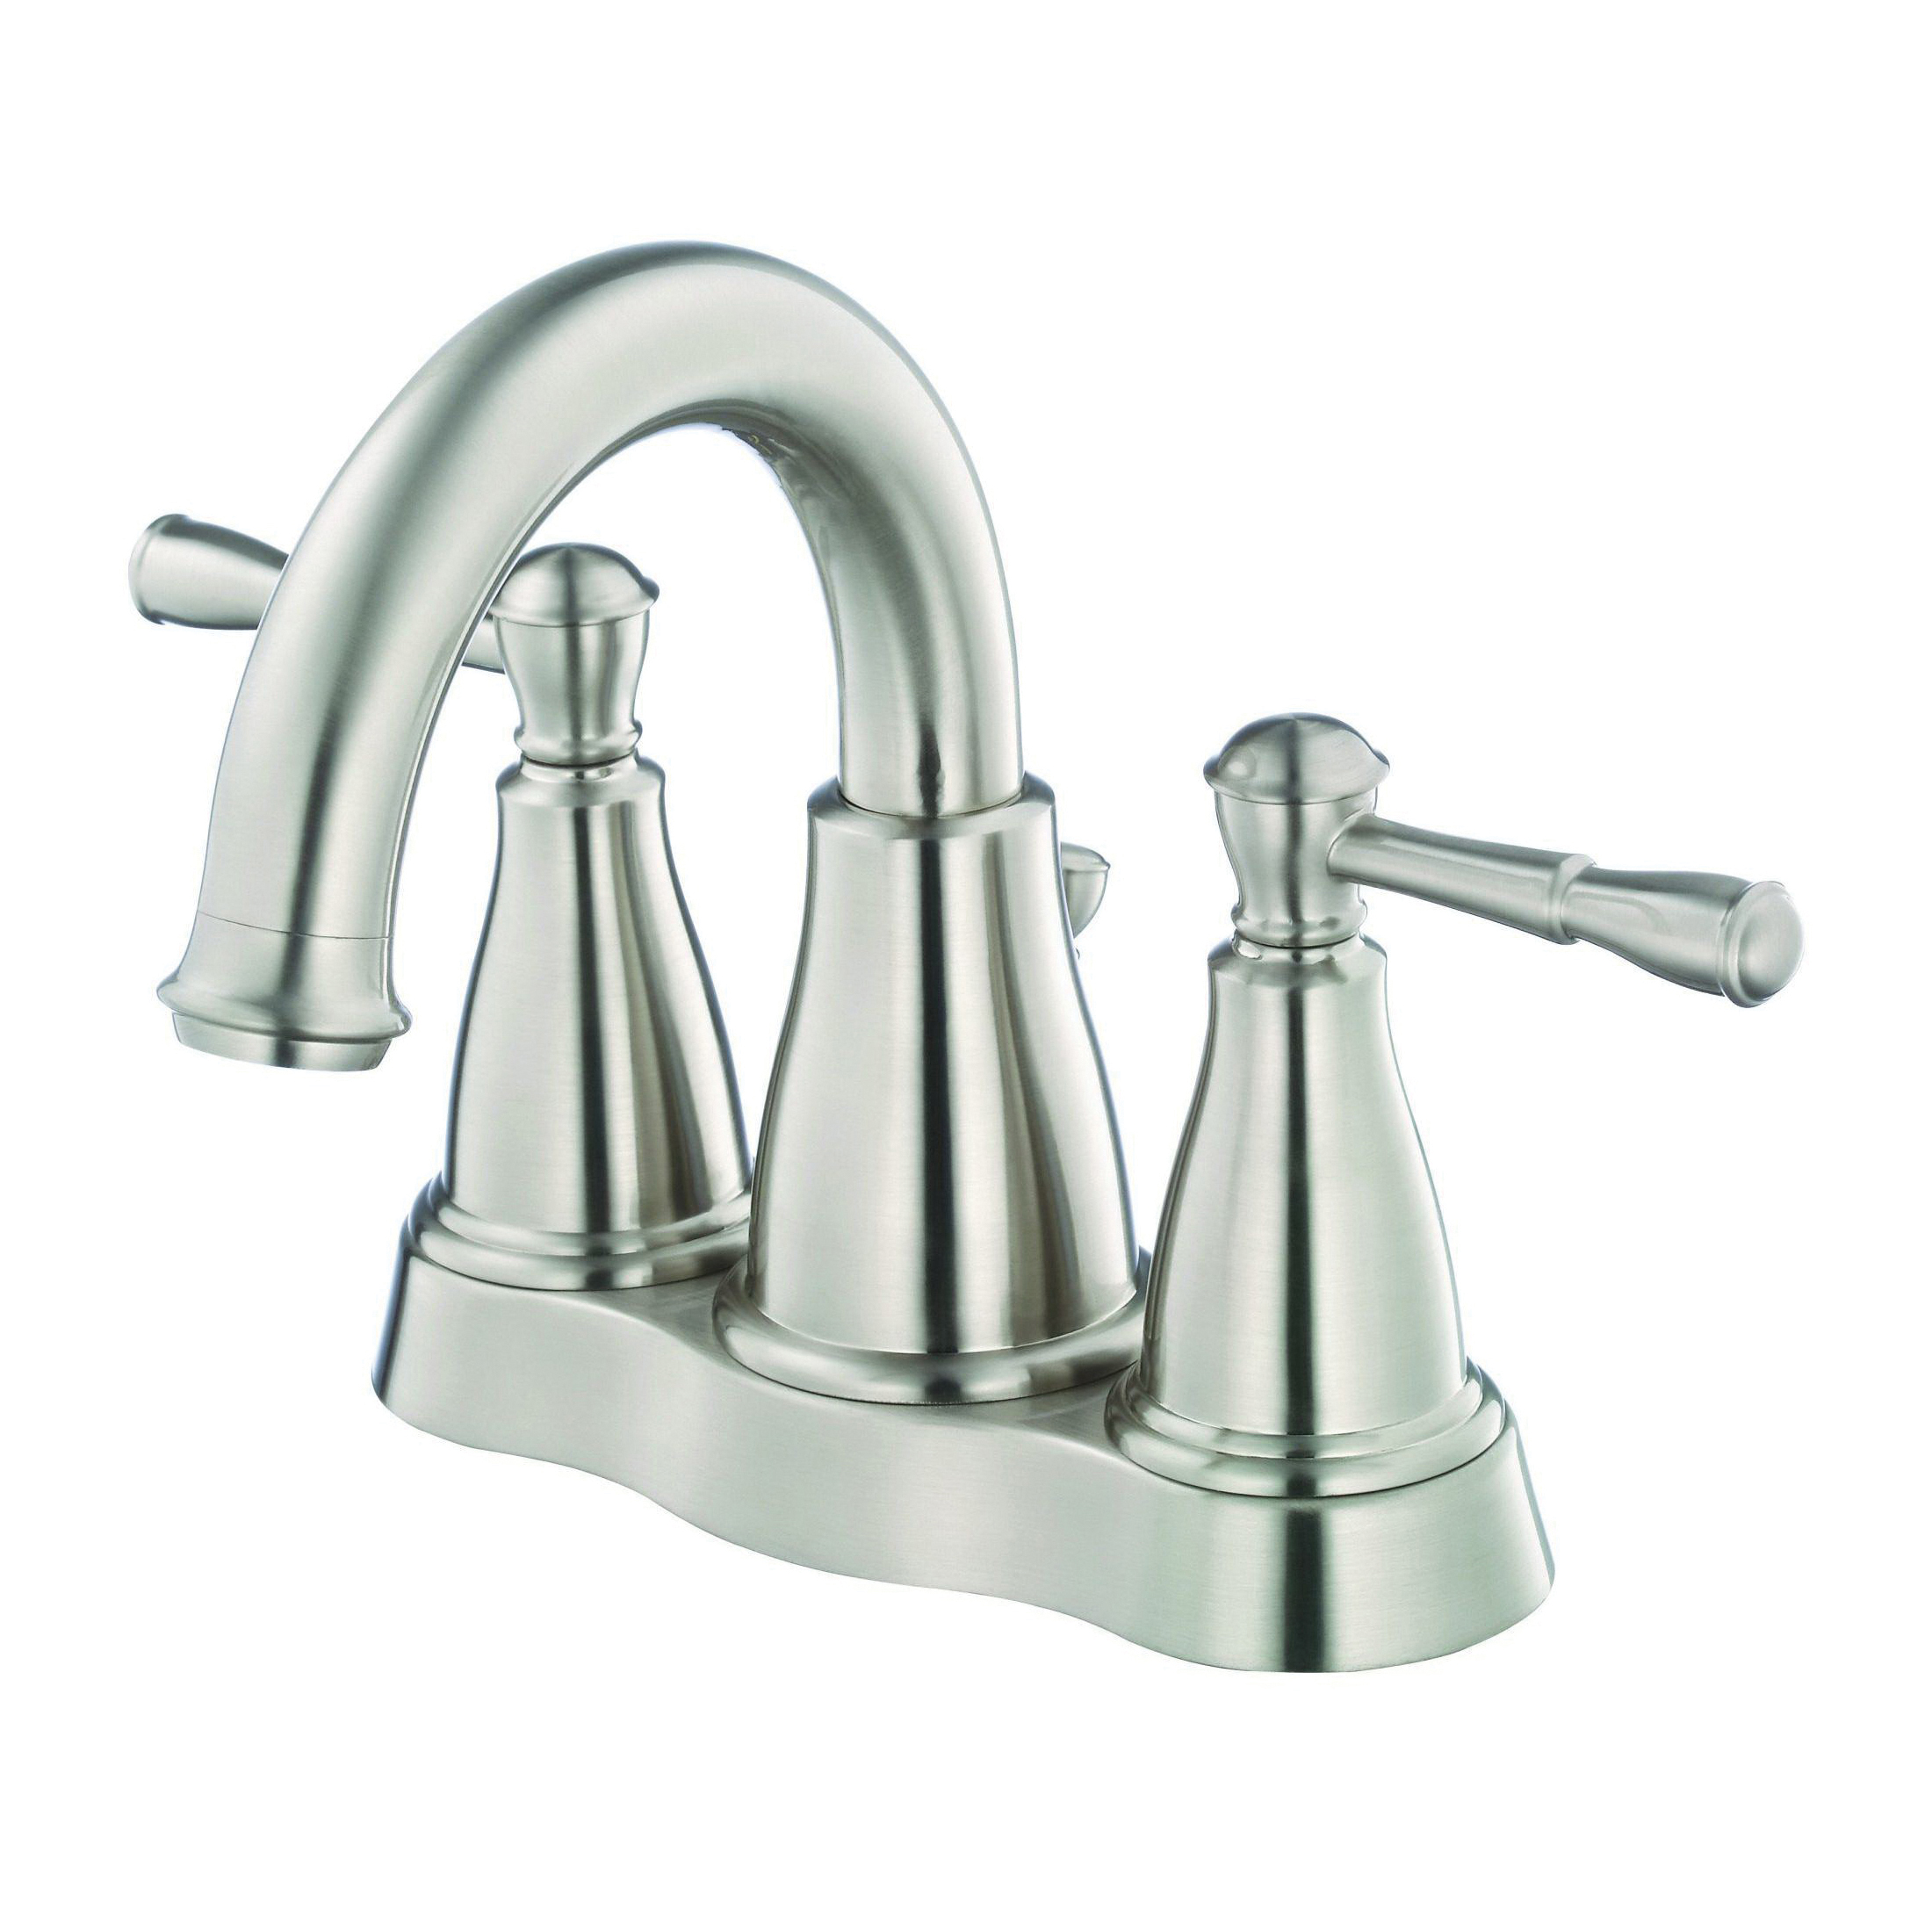 Danze® D301115BN Centerset Lavatory Faucet, Eastham™, Brushed Nickel, 2 Handles, 50/50 Pop-Up Drain, 1.2 gpm